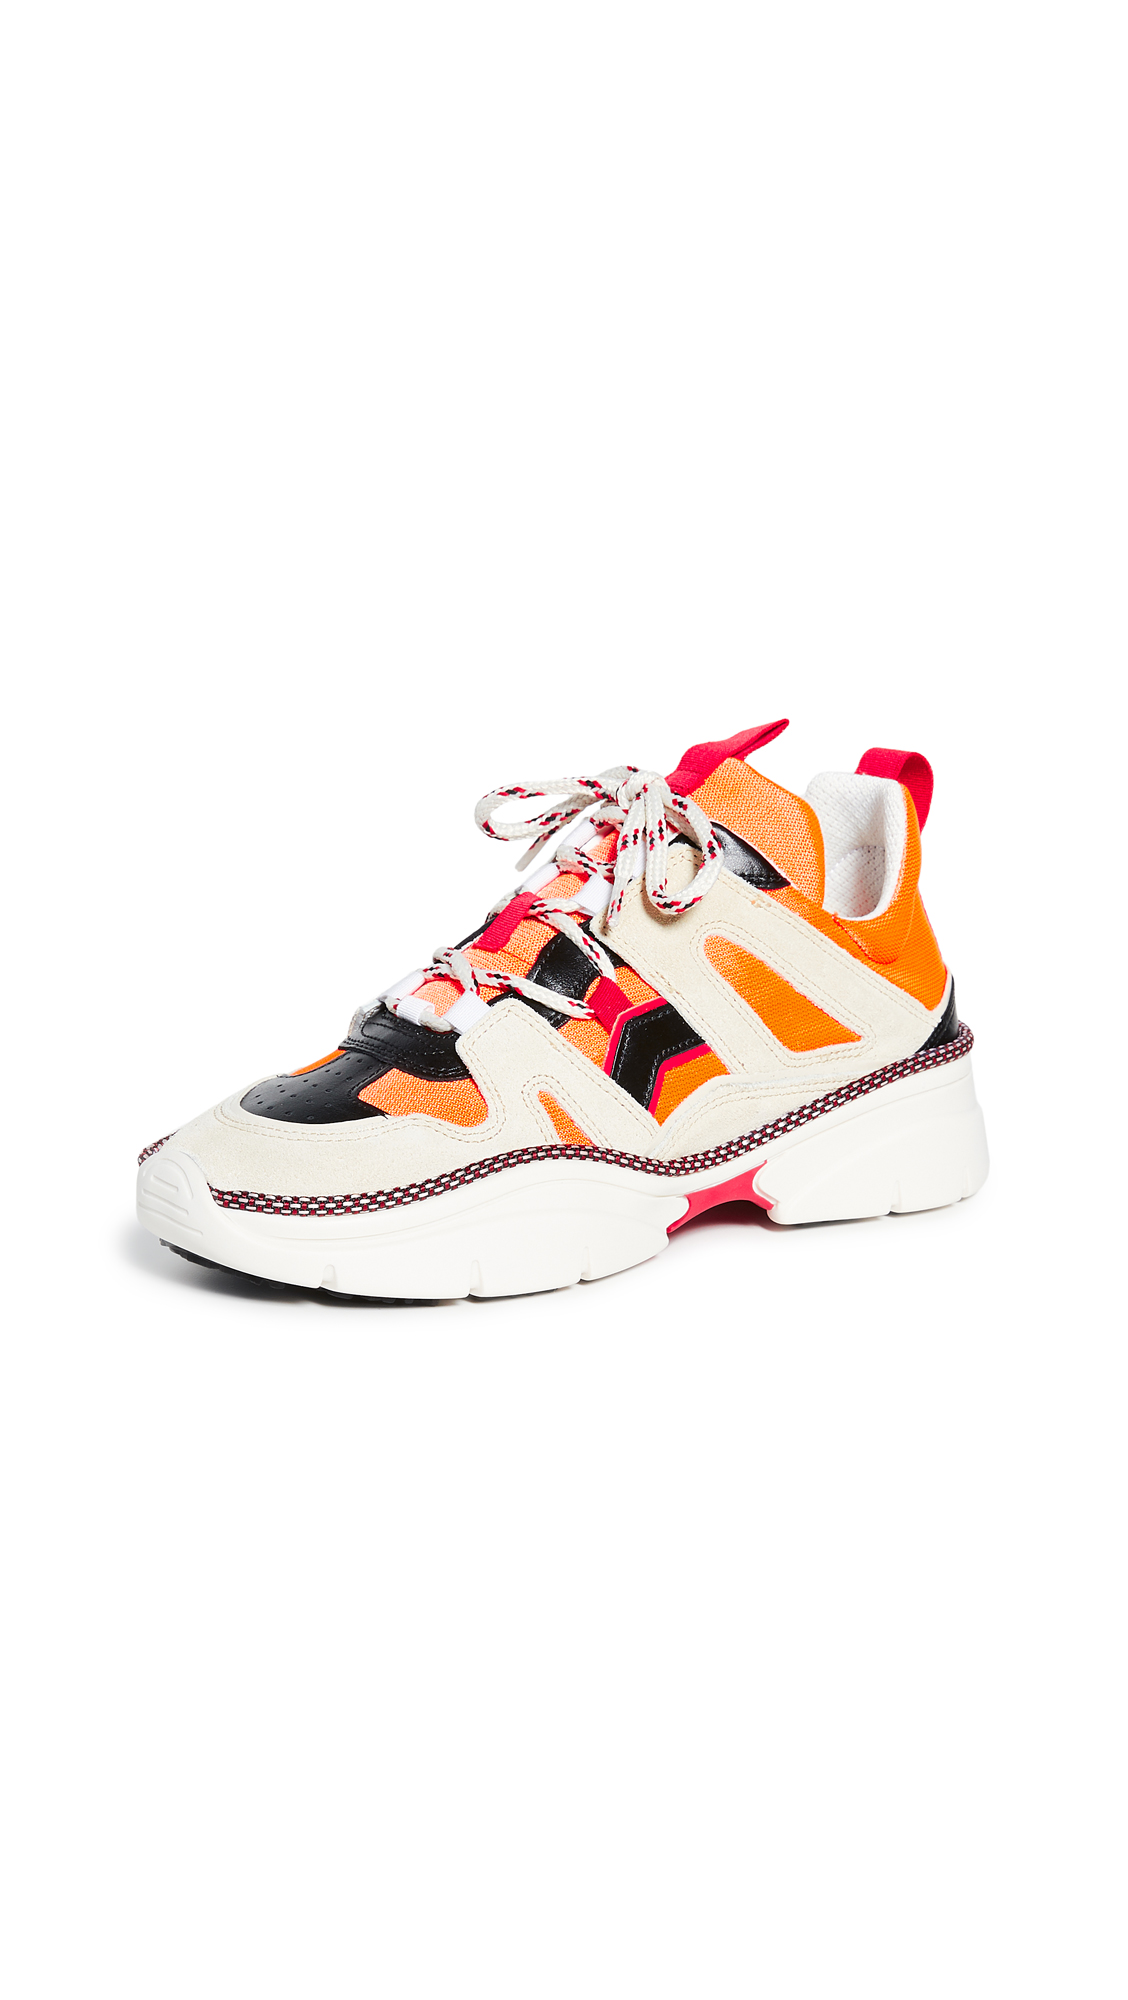 Isabel Marant Kindsay Suede, Leather And Mesh Sneakers In Orange